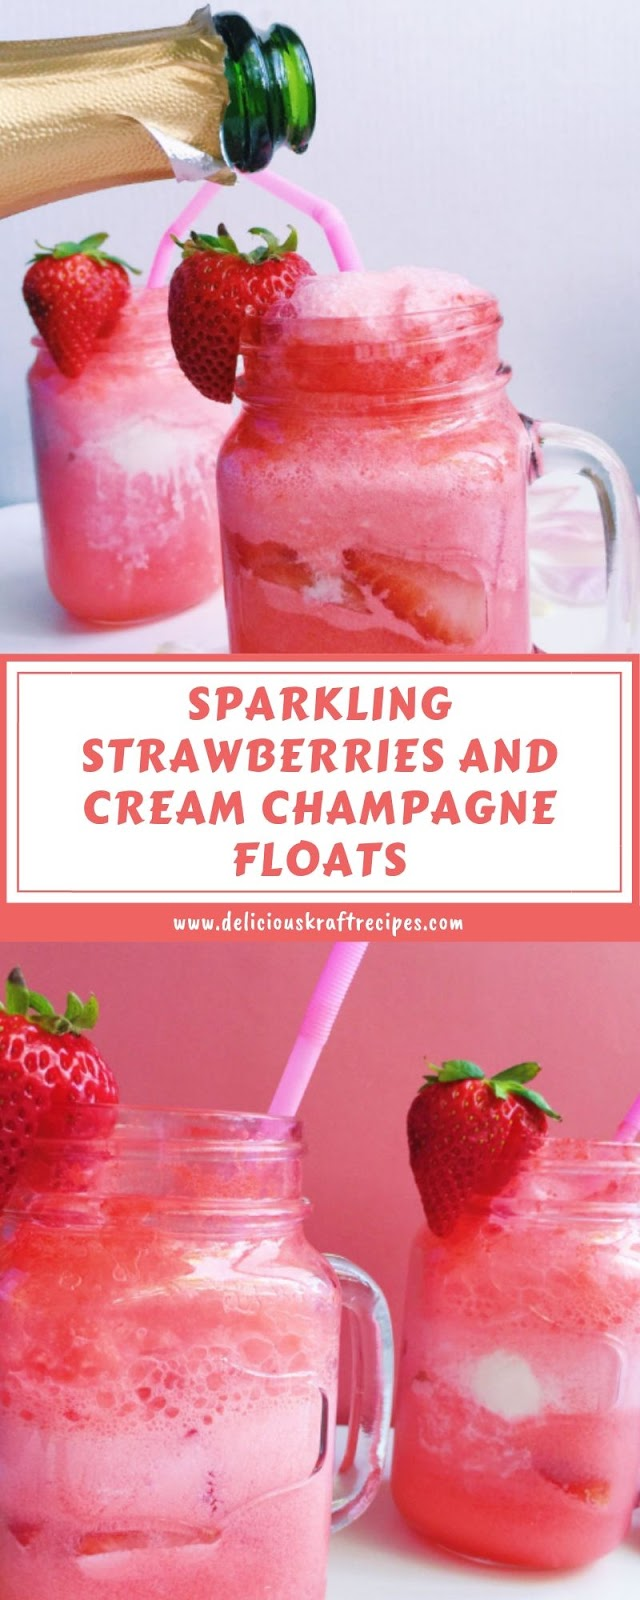 SPARKLING STRAWBERRIES AND CREAM CHAMPAGNE FLOATS